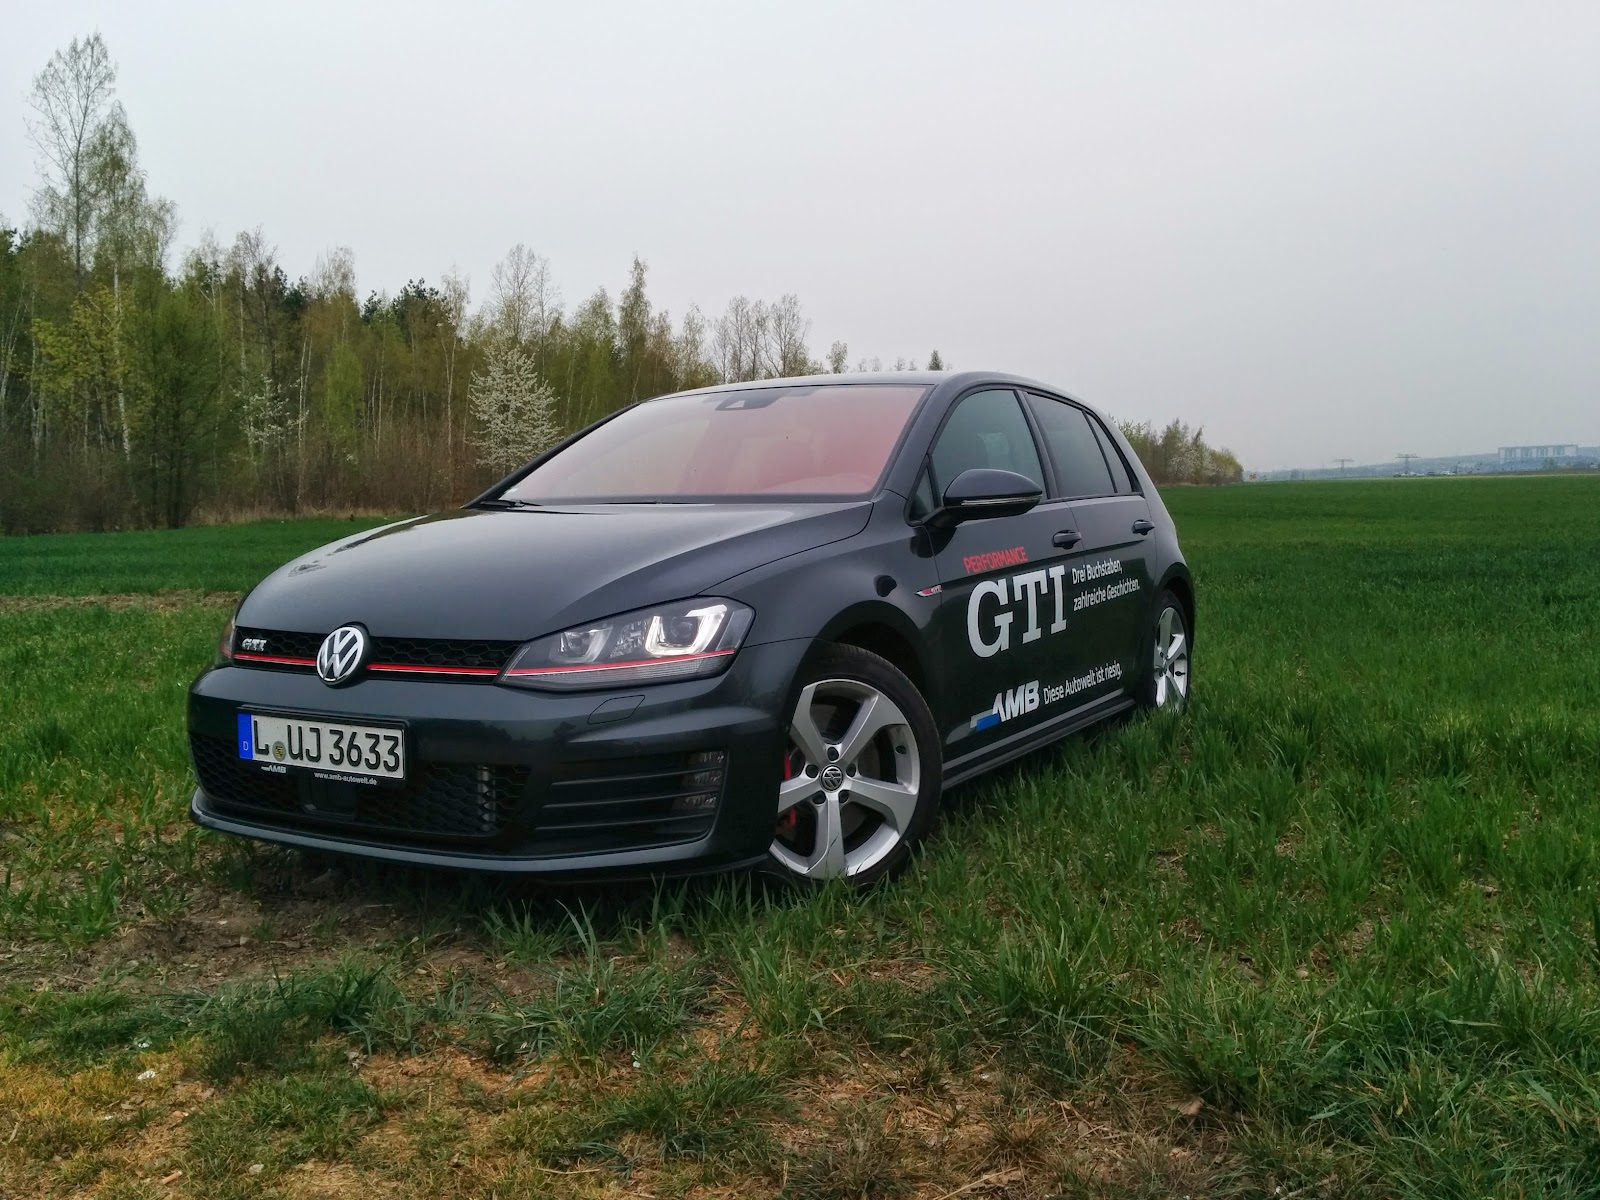 golf 7 gti probefahrt april 2014 blitzer in borna und. Black Bedroom Furniture Sets. Home Design Ideas